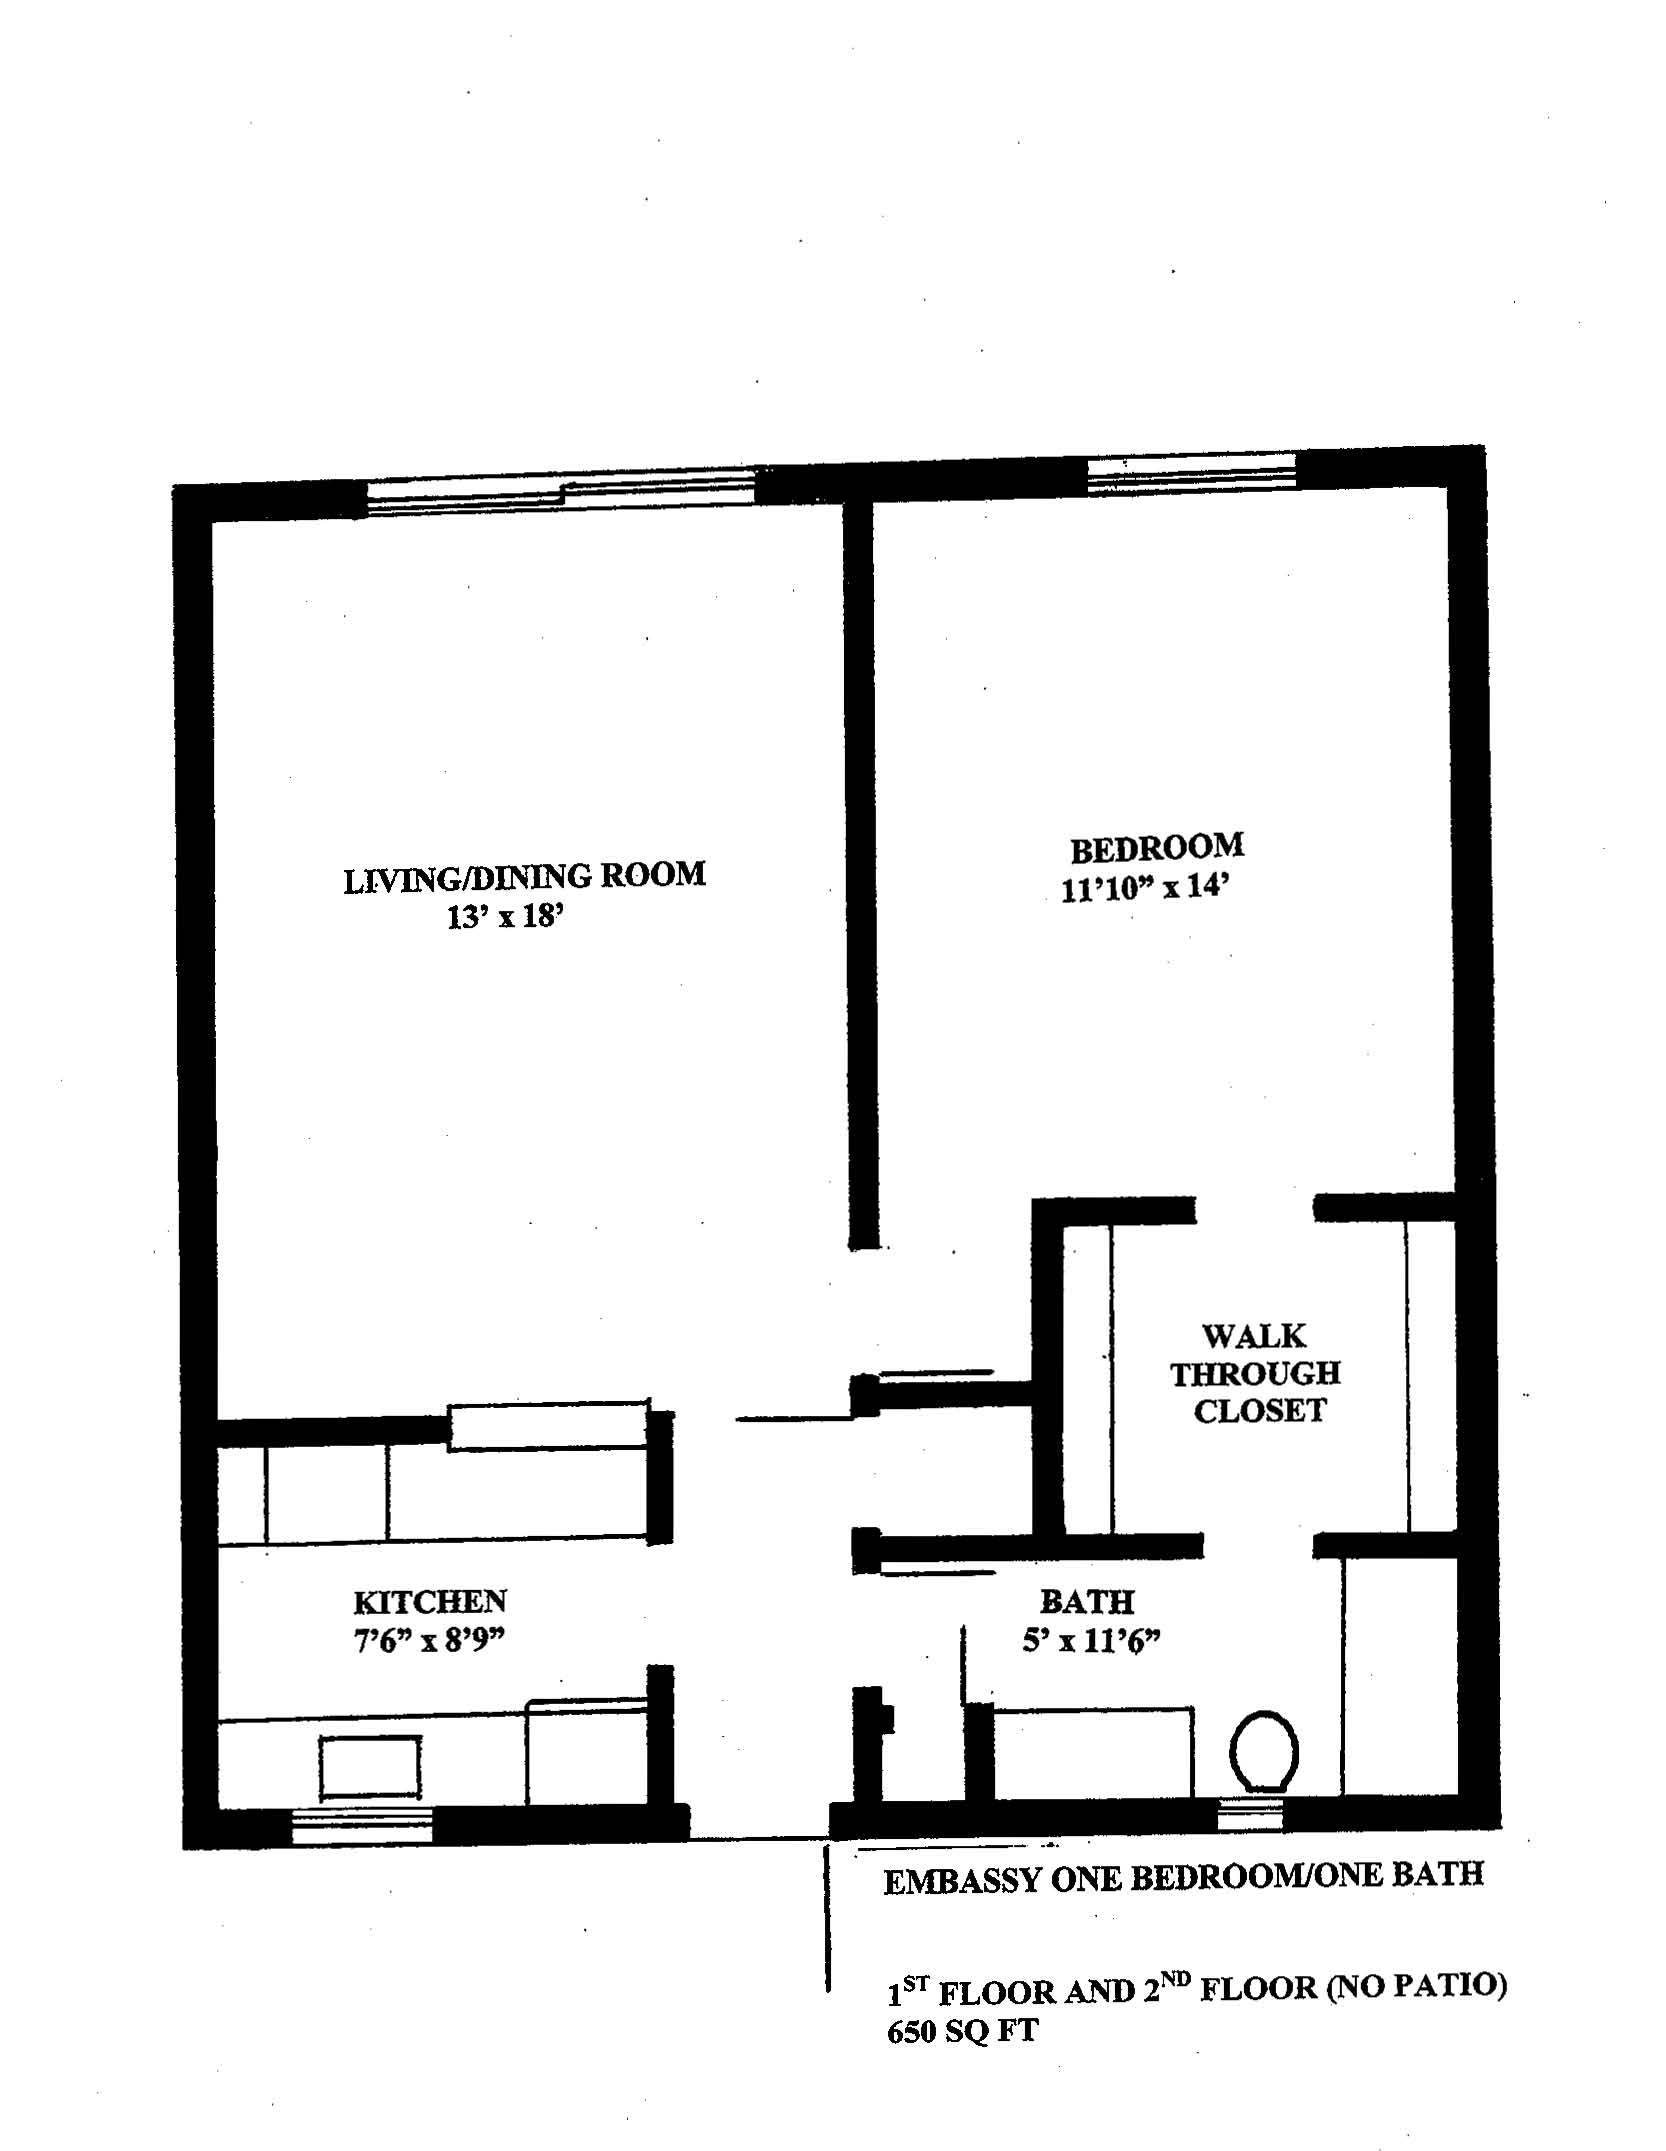 WestShore Apartments/Embassy Apartments - Floorplan - EMBASSY 1a - One Available - Located at Embassy Apartments